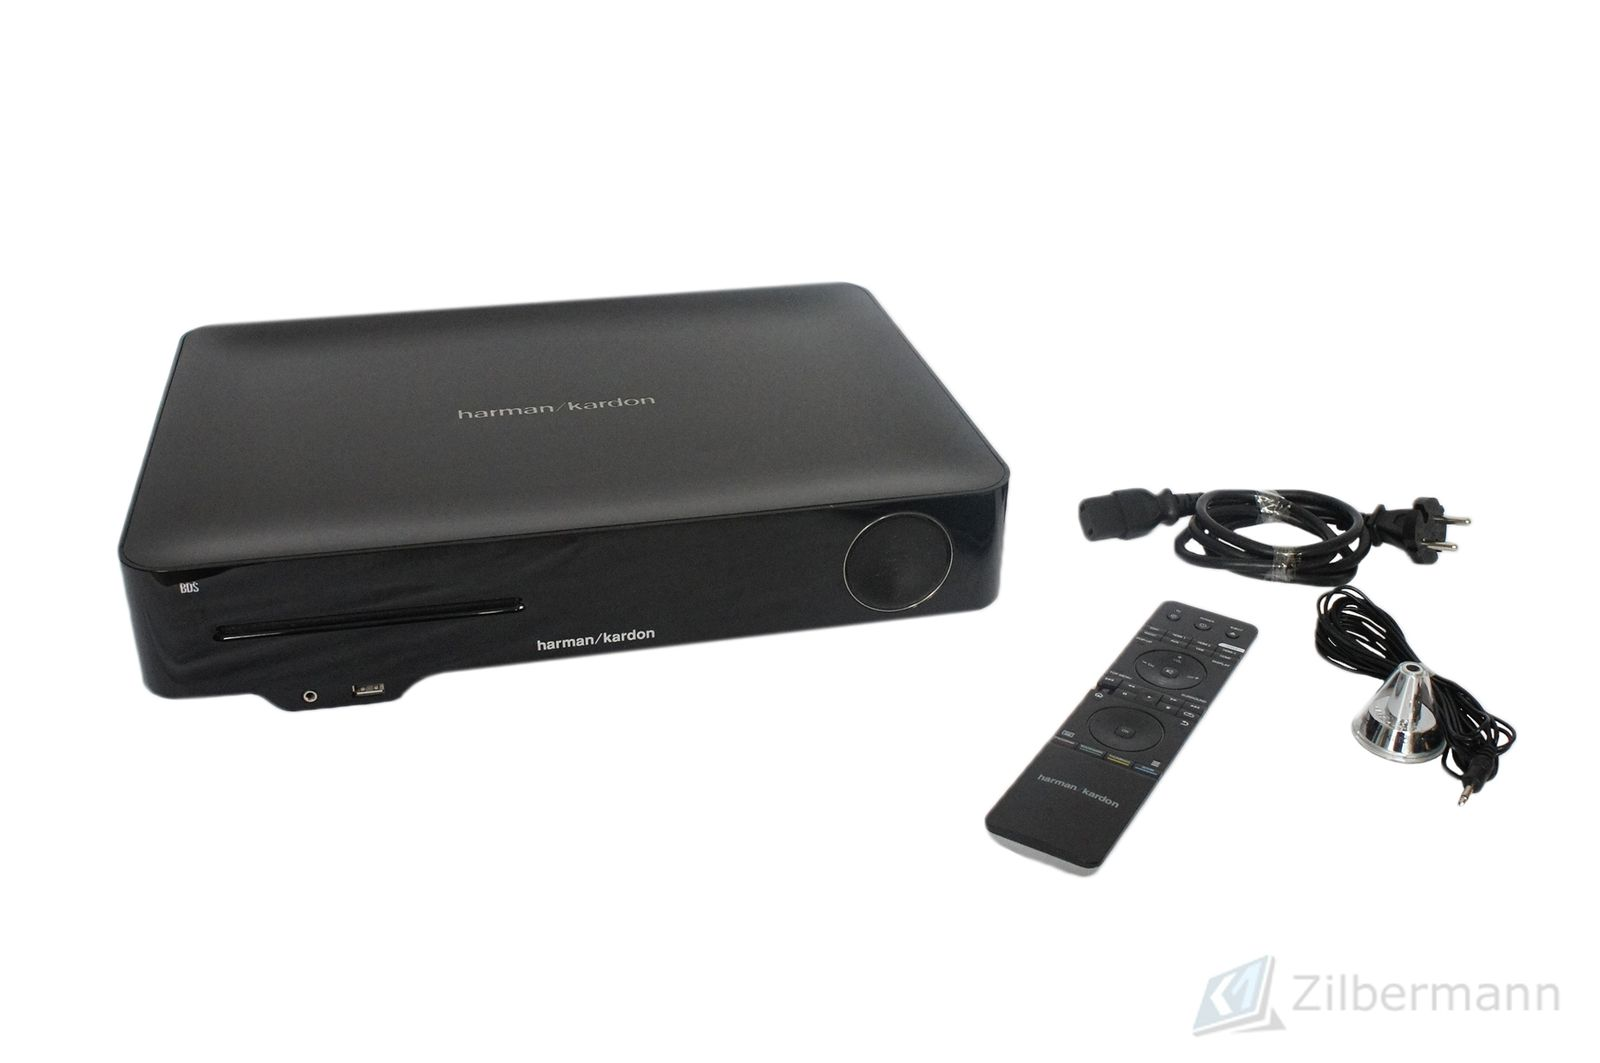 Harman_Kardon_BDS_277_Blu-Ray_2.1_Receiver